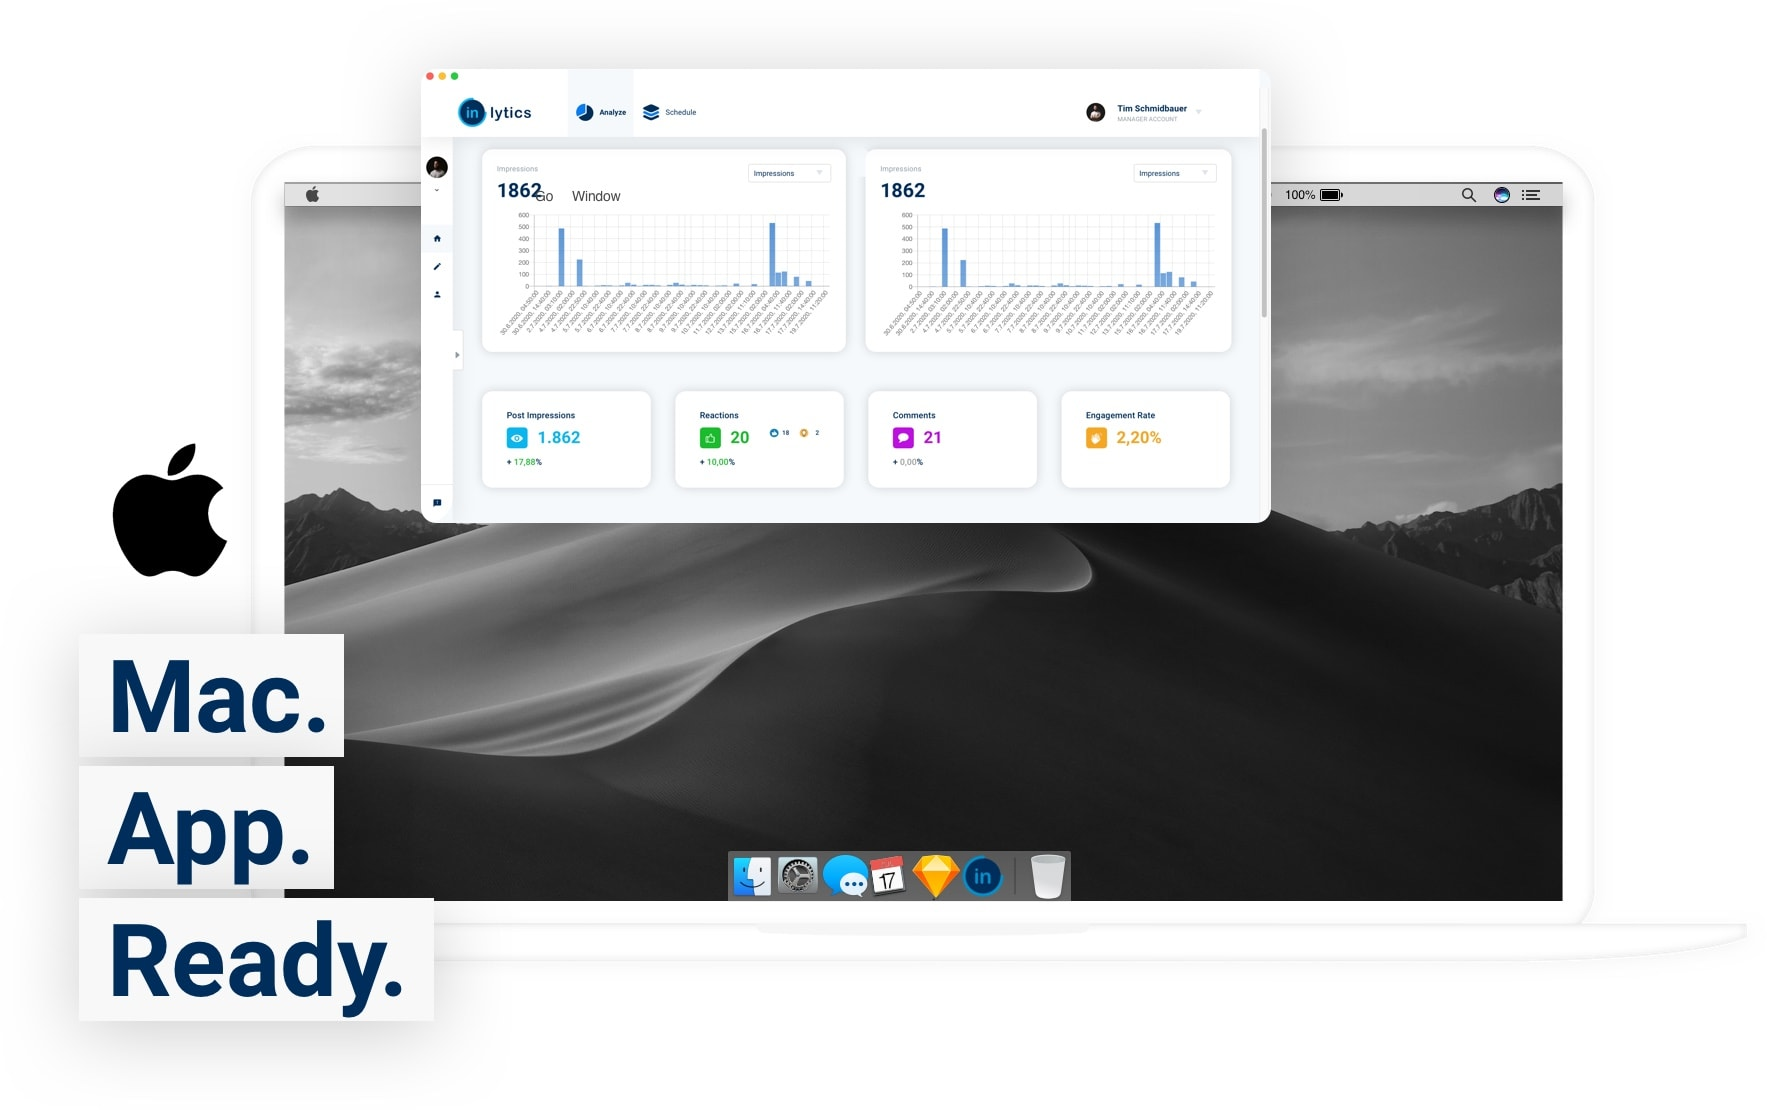 inlytics mac app image for your linkedin analytics tool on your desktop